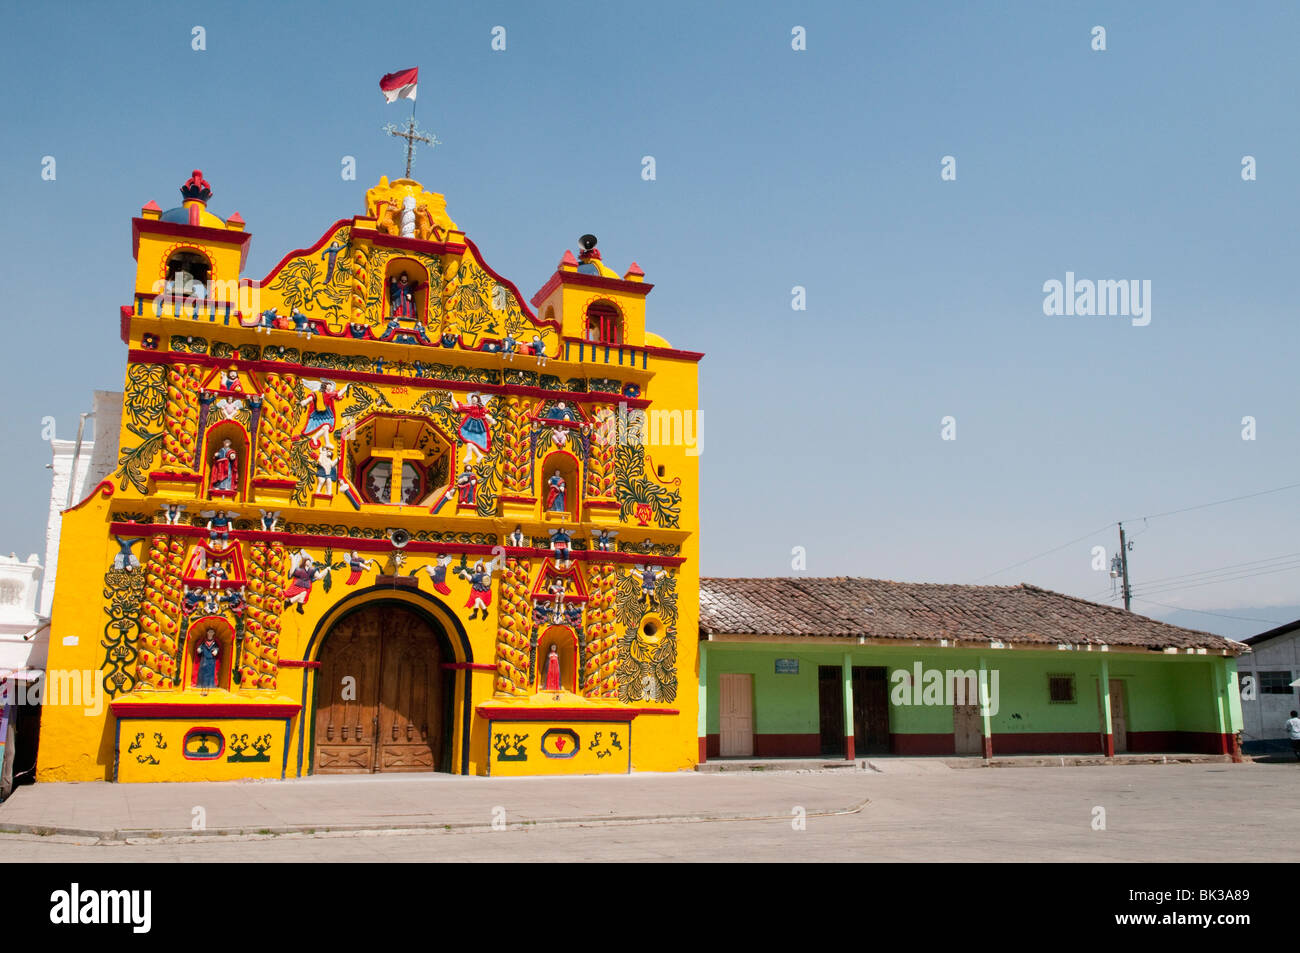 Church, San Andres Xecul, Guatemala, Central America - Stock Image